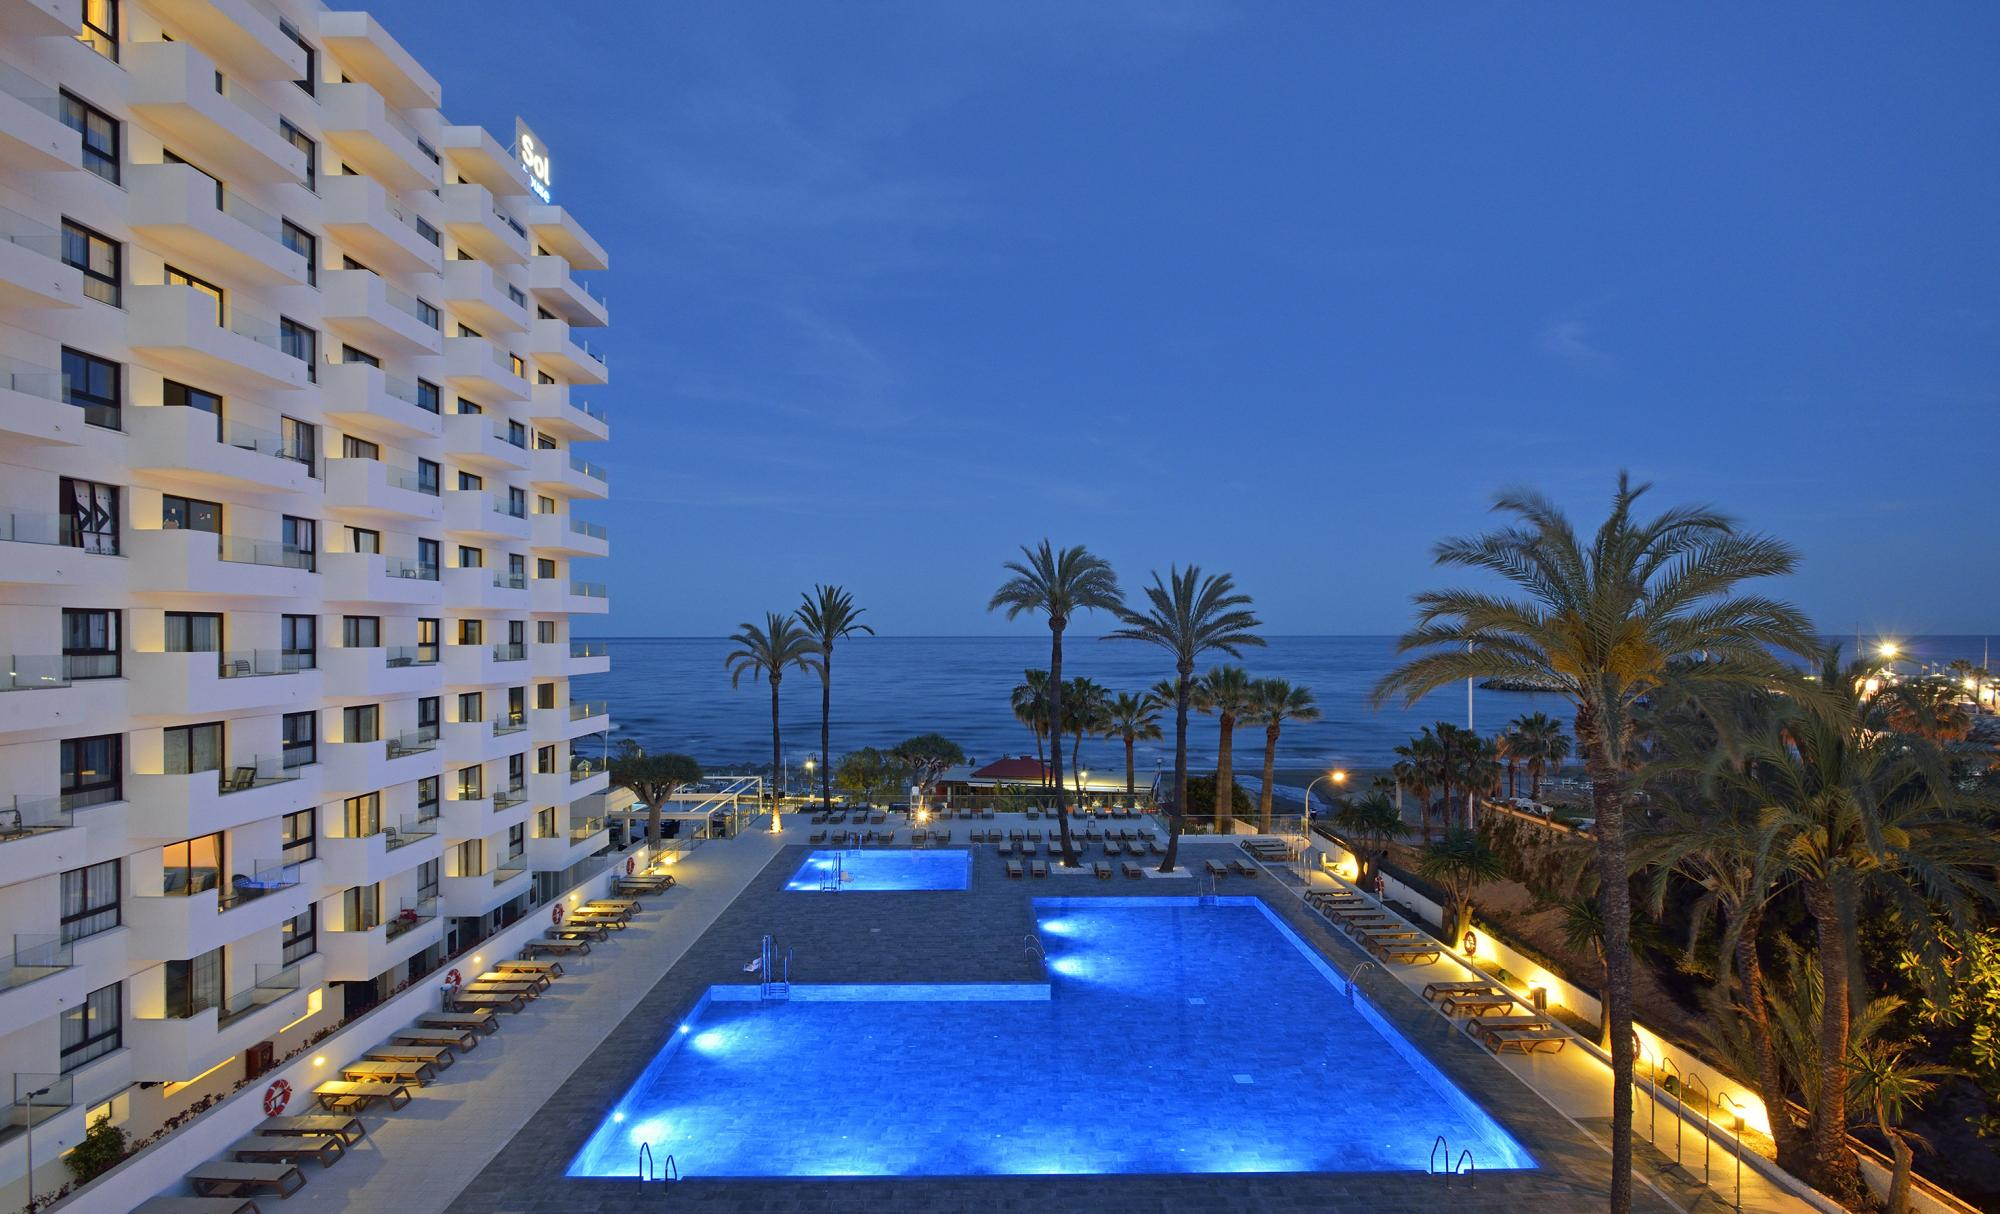 View Sol House Aloha Hotel's scenic main pool in sensational Costa Del Sol.